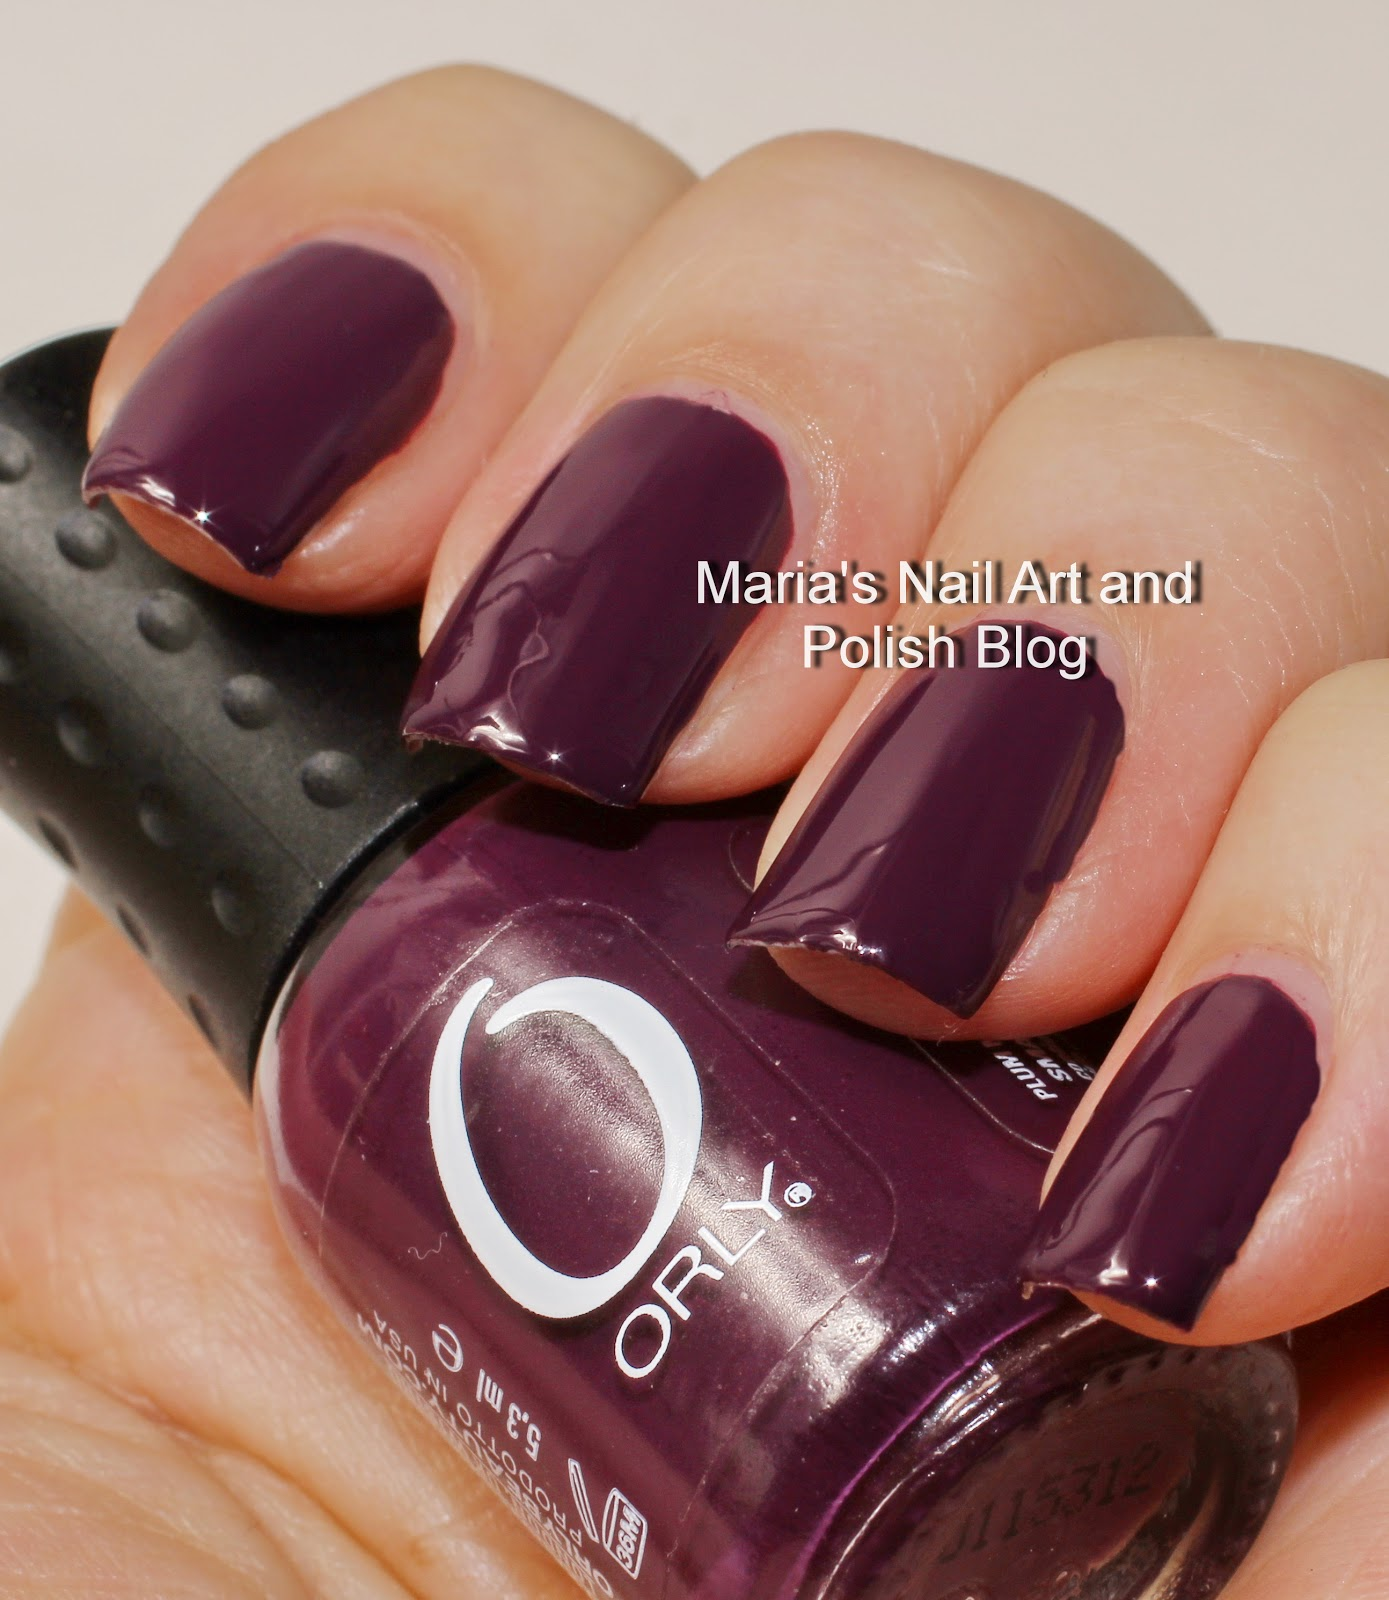 Marias Nail Art and Polish Blog: Orly Monroe\'s Red and Plum Noir ...